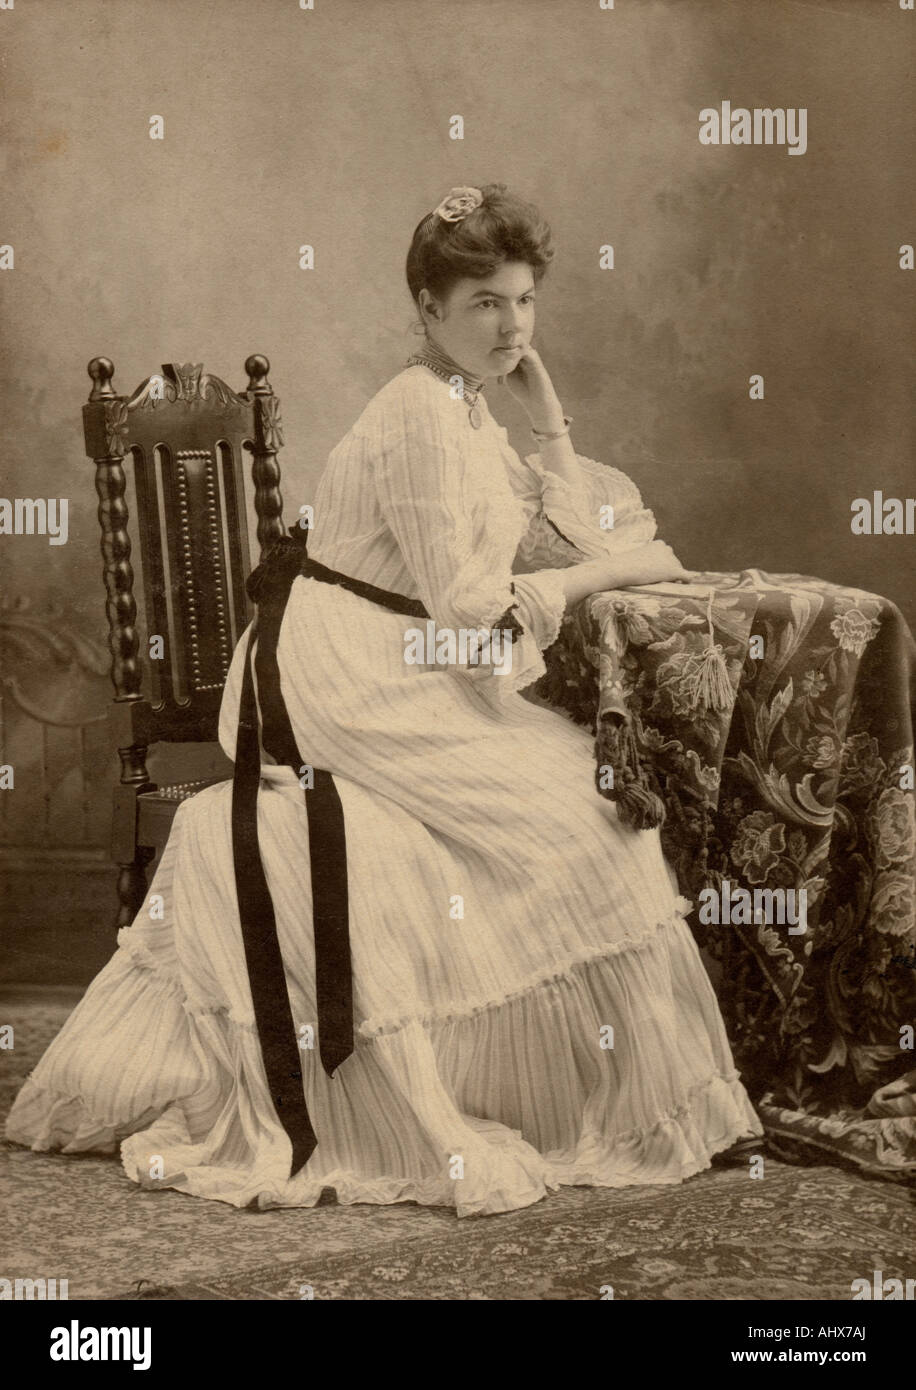 Circa 1890s antique photograph of a woman aged about 25-35. - Stock Image